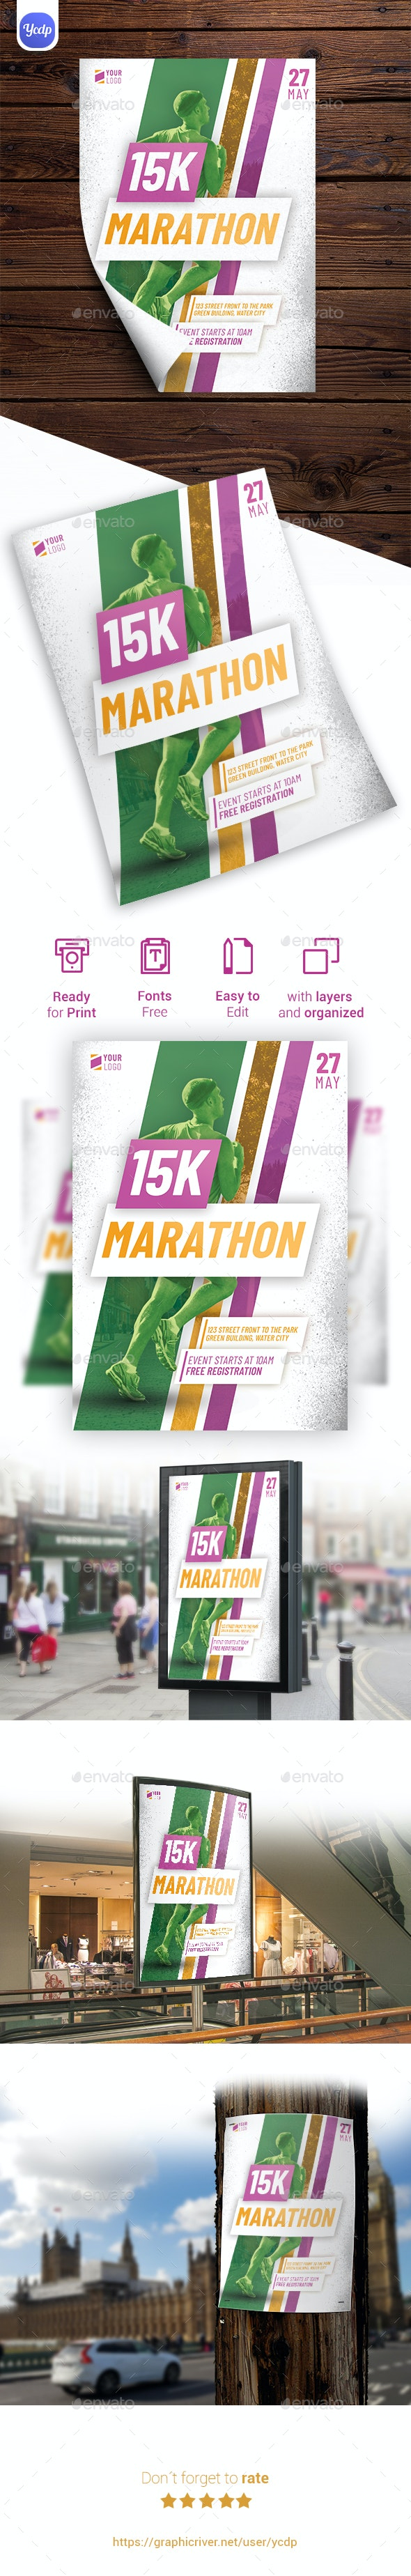 Marathon Event Flyer - Events Flyers